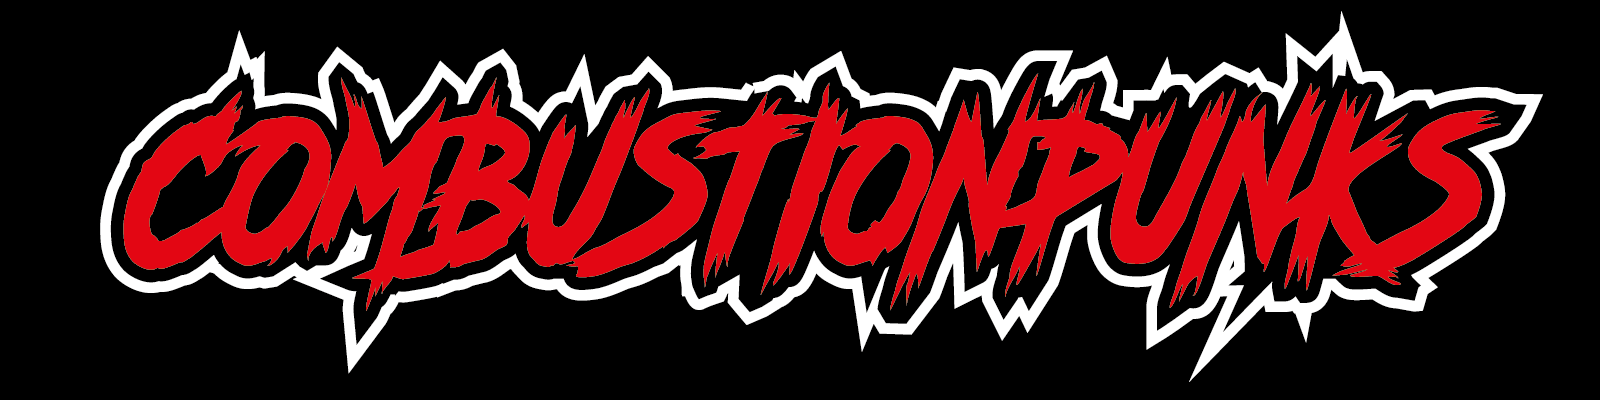 Join Combustionpunks